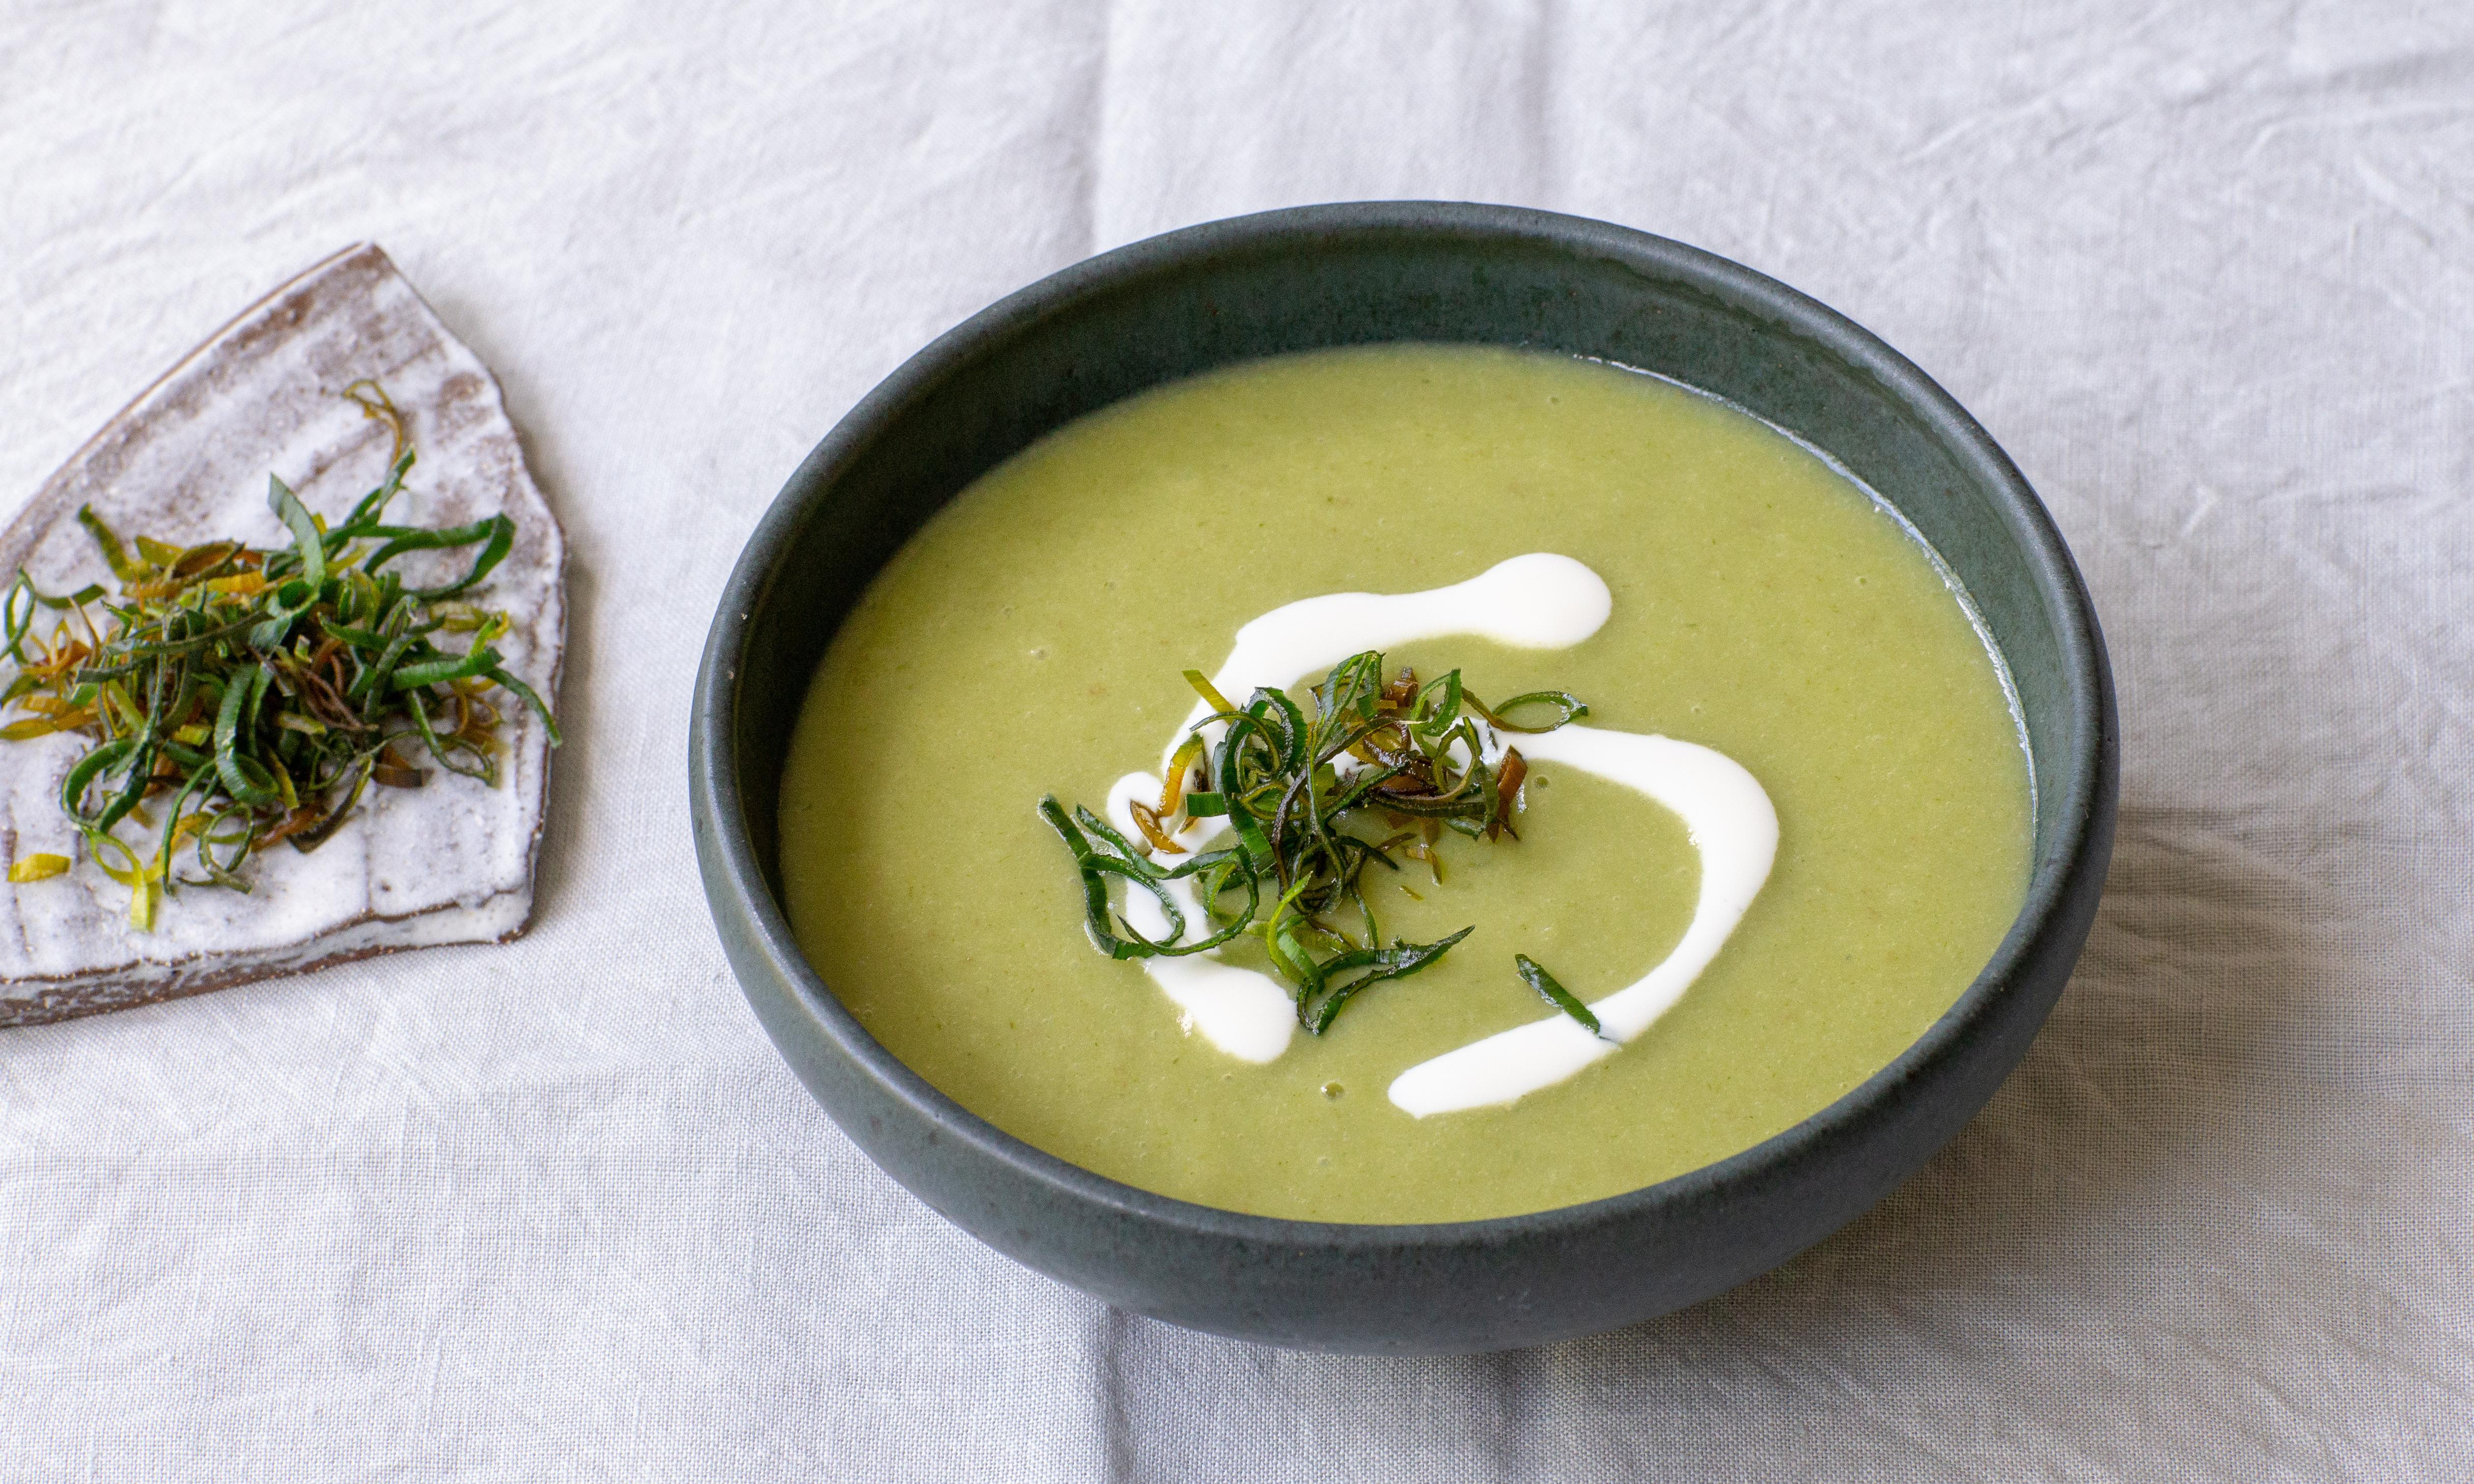 Go green: don't let the tastiest part of a leek go to waste